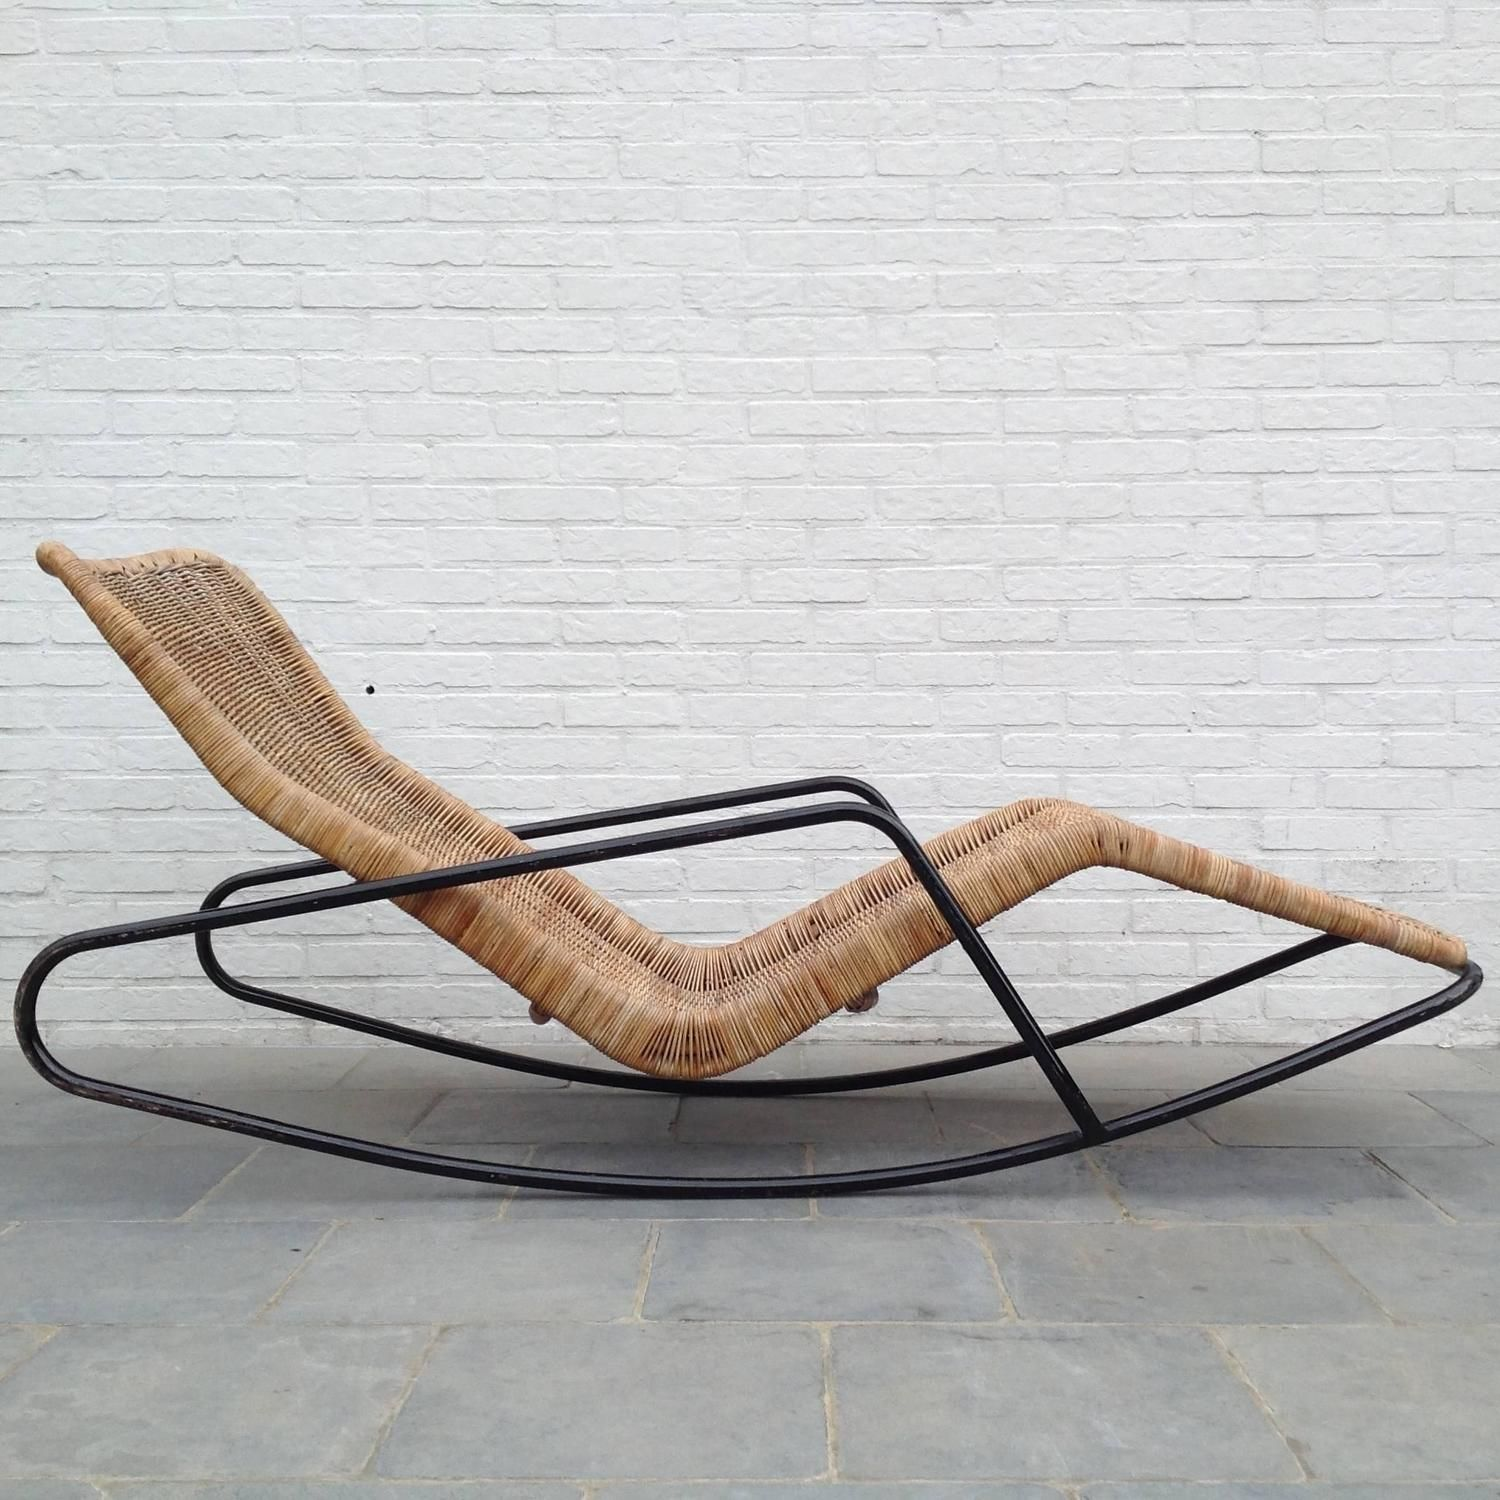 Very Rare Rocking Chaise Longue In Cane By Dirk Van Sliedrecht 2